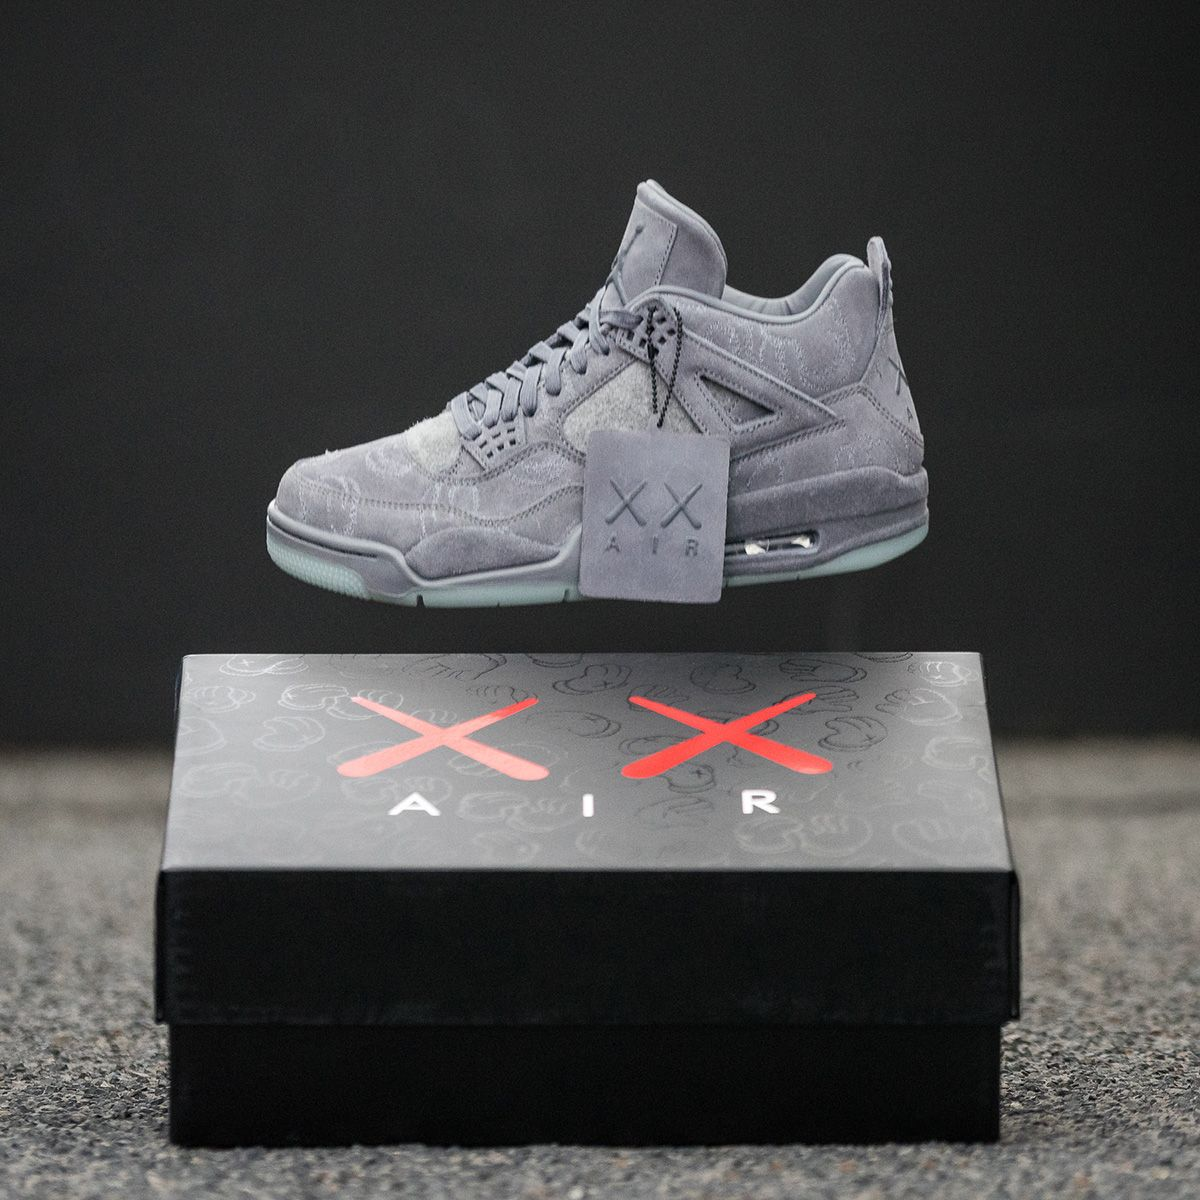 sports shoes 010ba 56614 KAWS x Air Jordan IV Retro - EU Kicks Sneaker Magazine